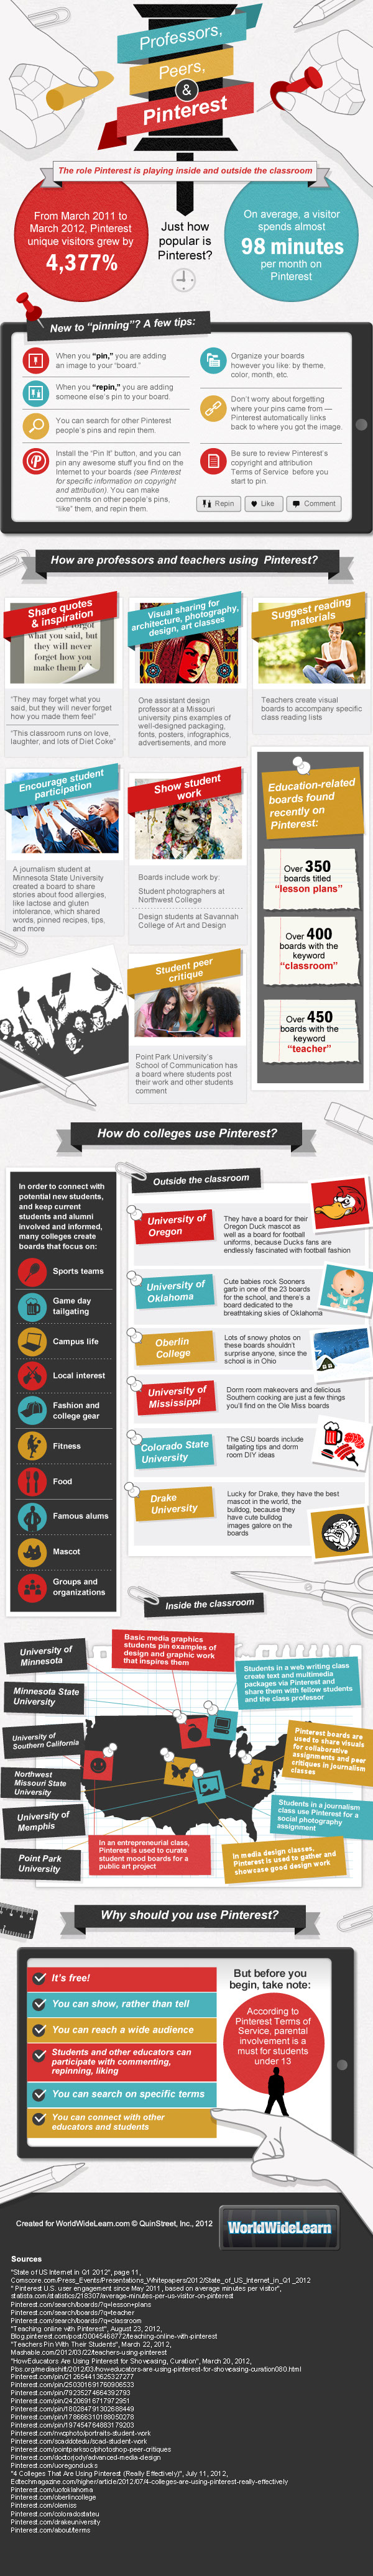 Pinterest in Education-Infographic